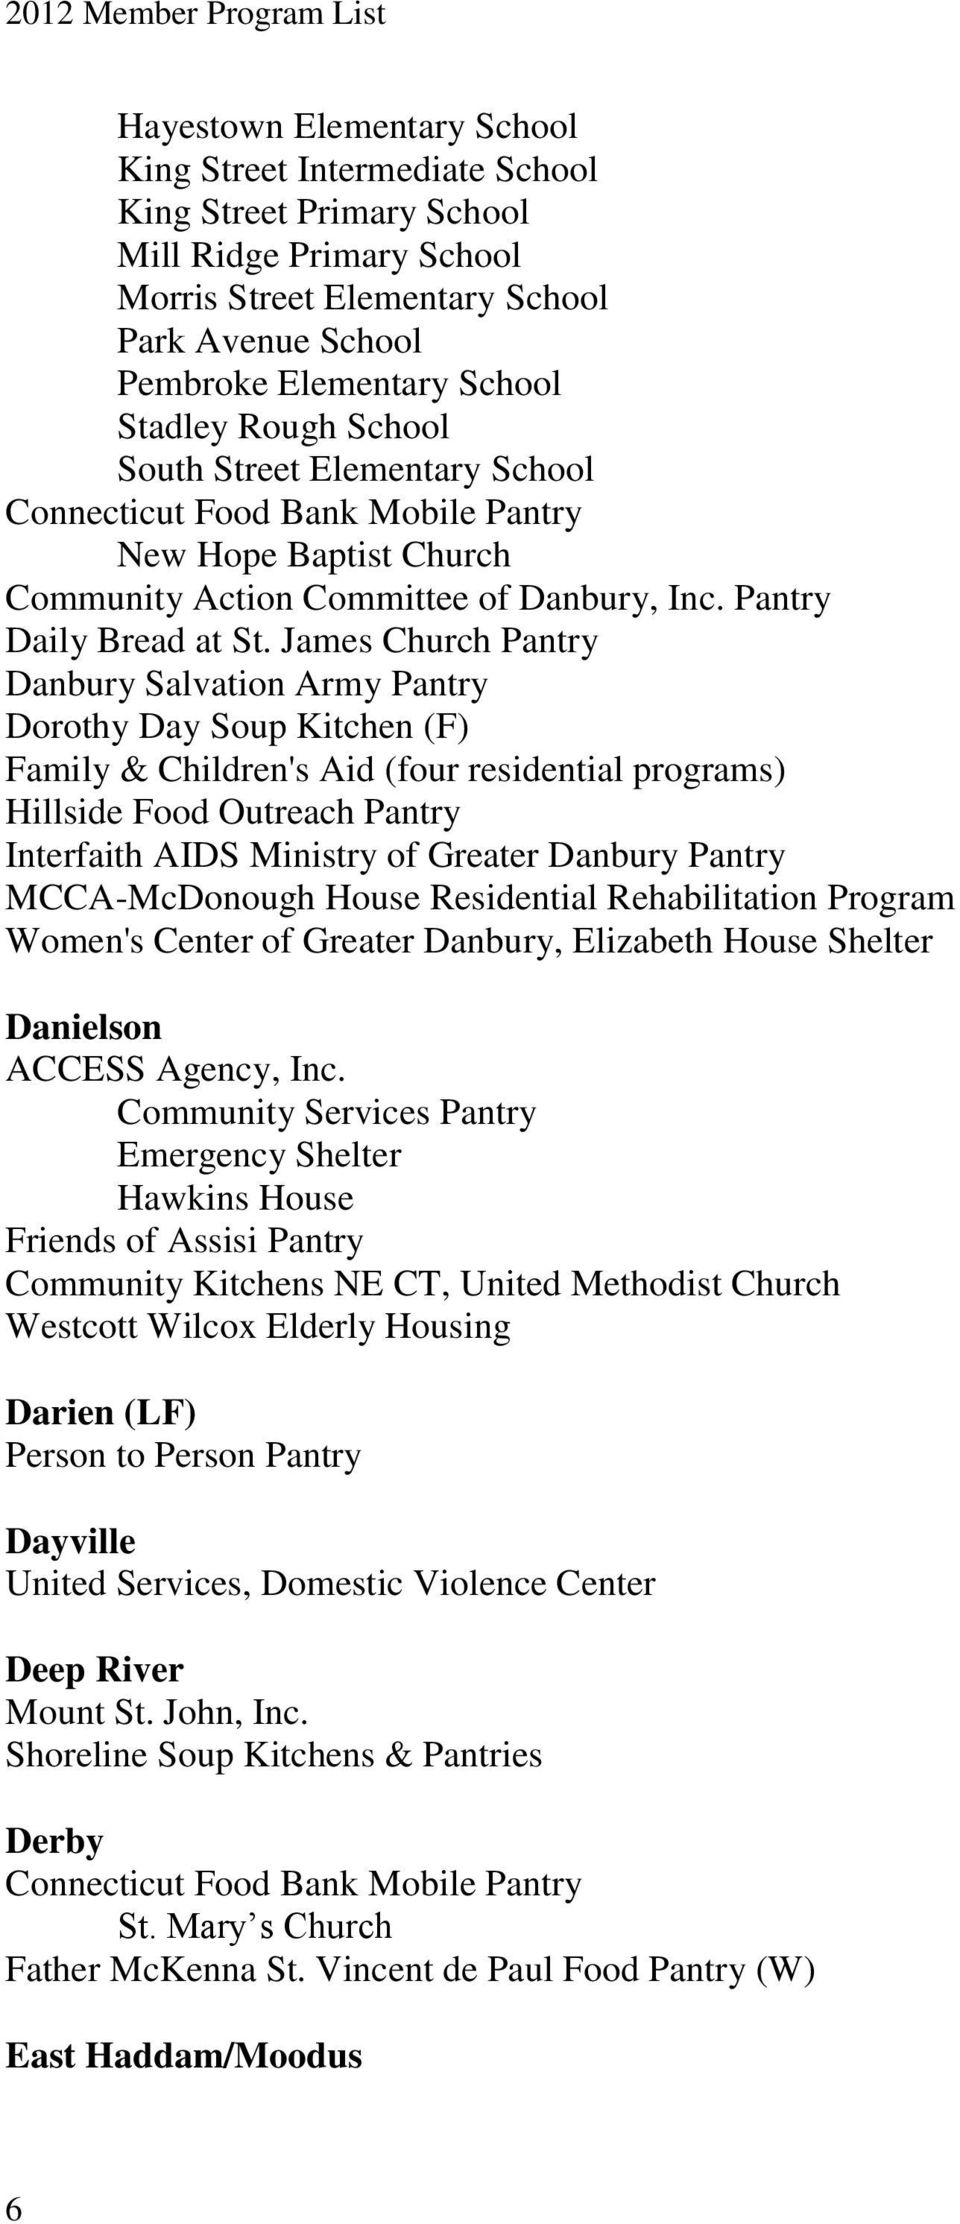 James Church Pantry Danbury Salvation Army Pantry Dorothy Day Soup Kitchen (F) Family & Children's Aid (four residential programs) Hillside Food Outreach Pantry Interfaith AIDS Ministry of Greater